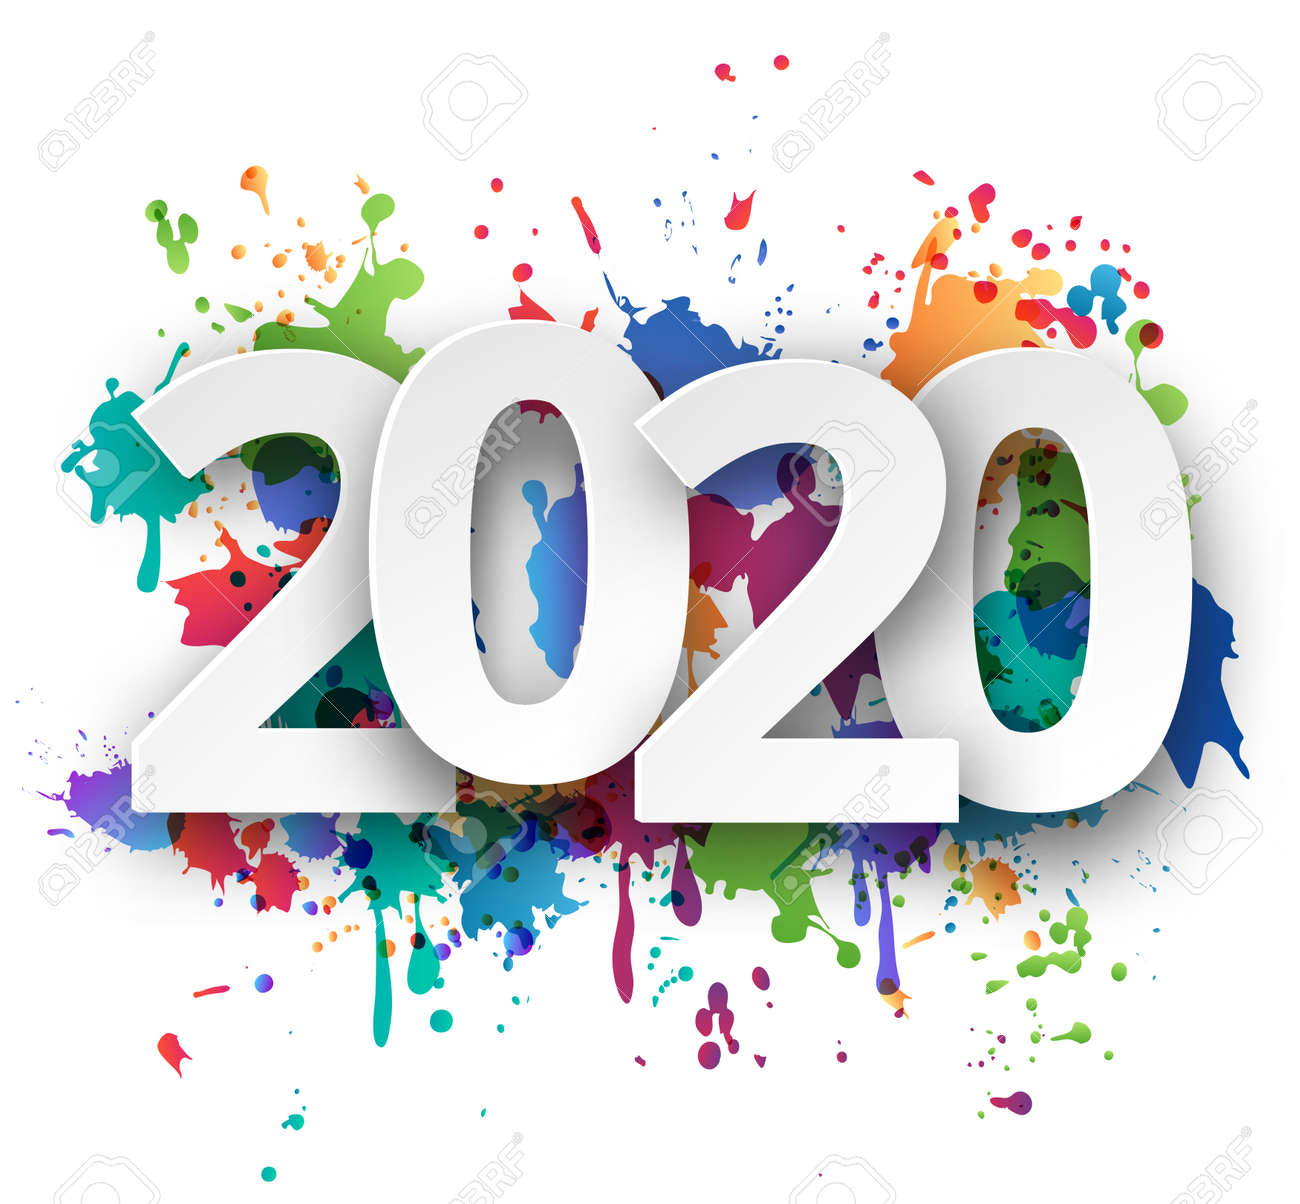 Happy new Year 2020 celebration with colorful spray paint template background. Vector paper illustration. - 133669439